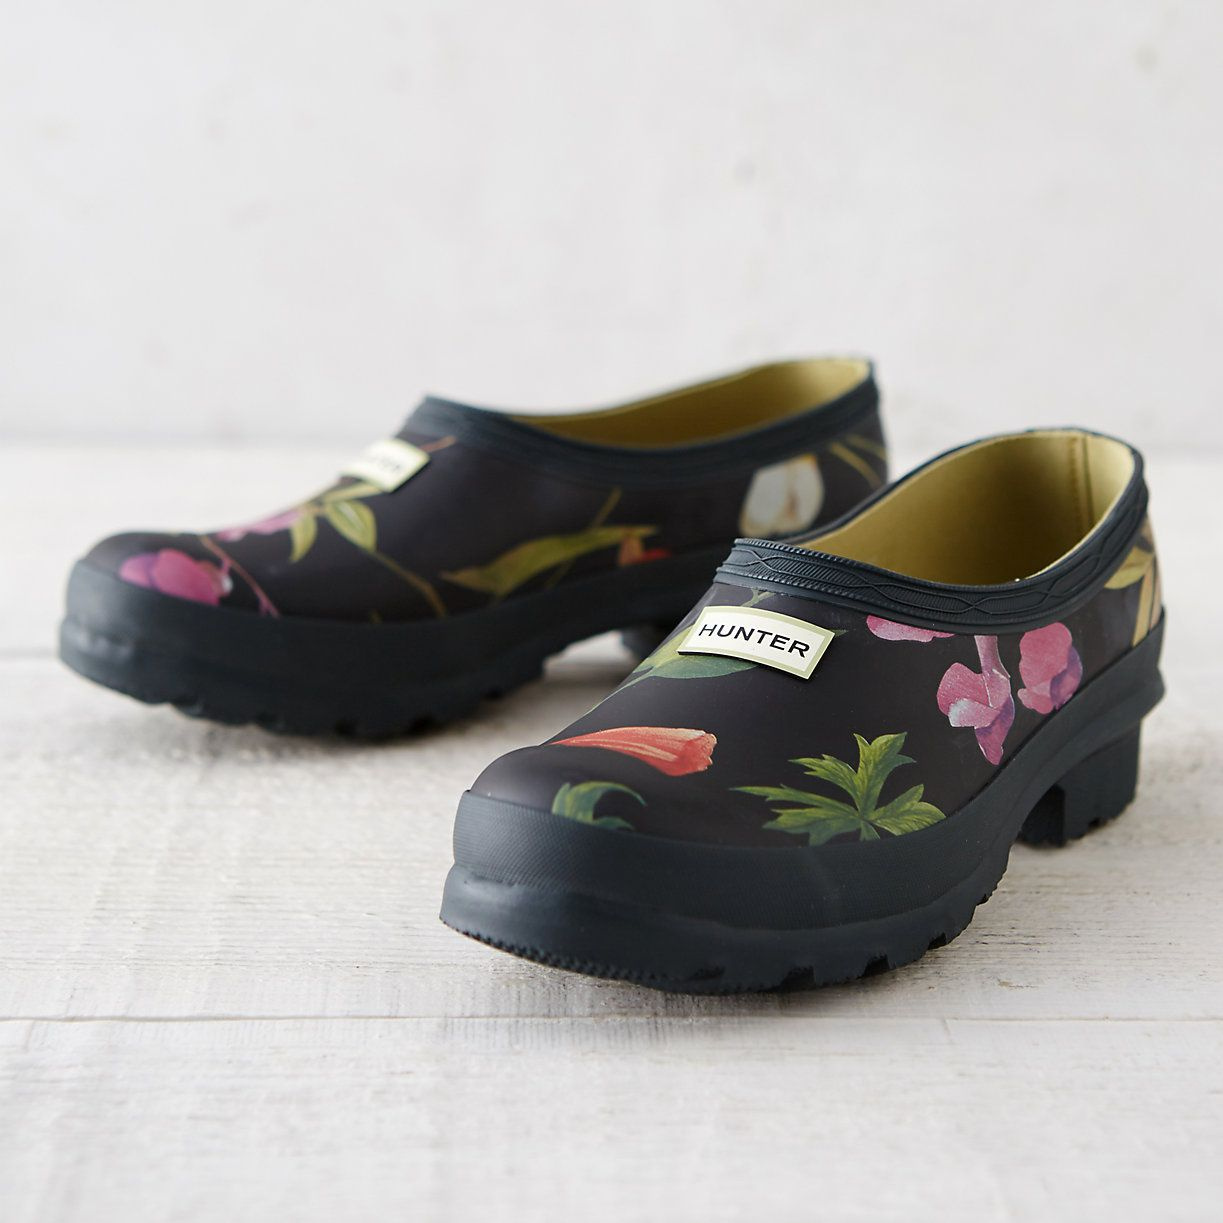 Hunter Floral Garden Clogs Gardens Fashion and Floral